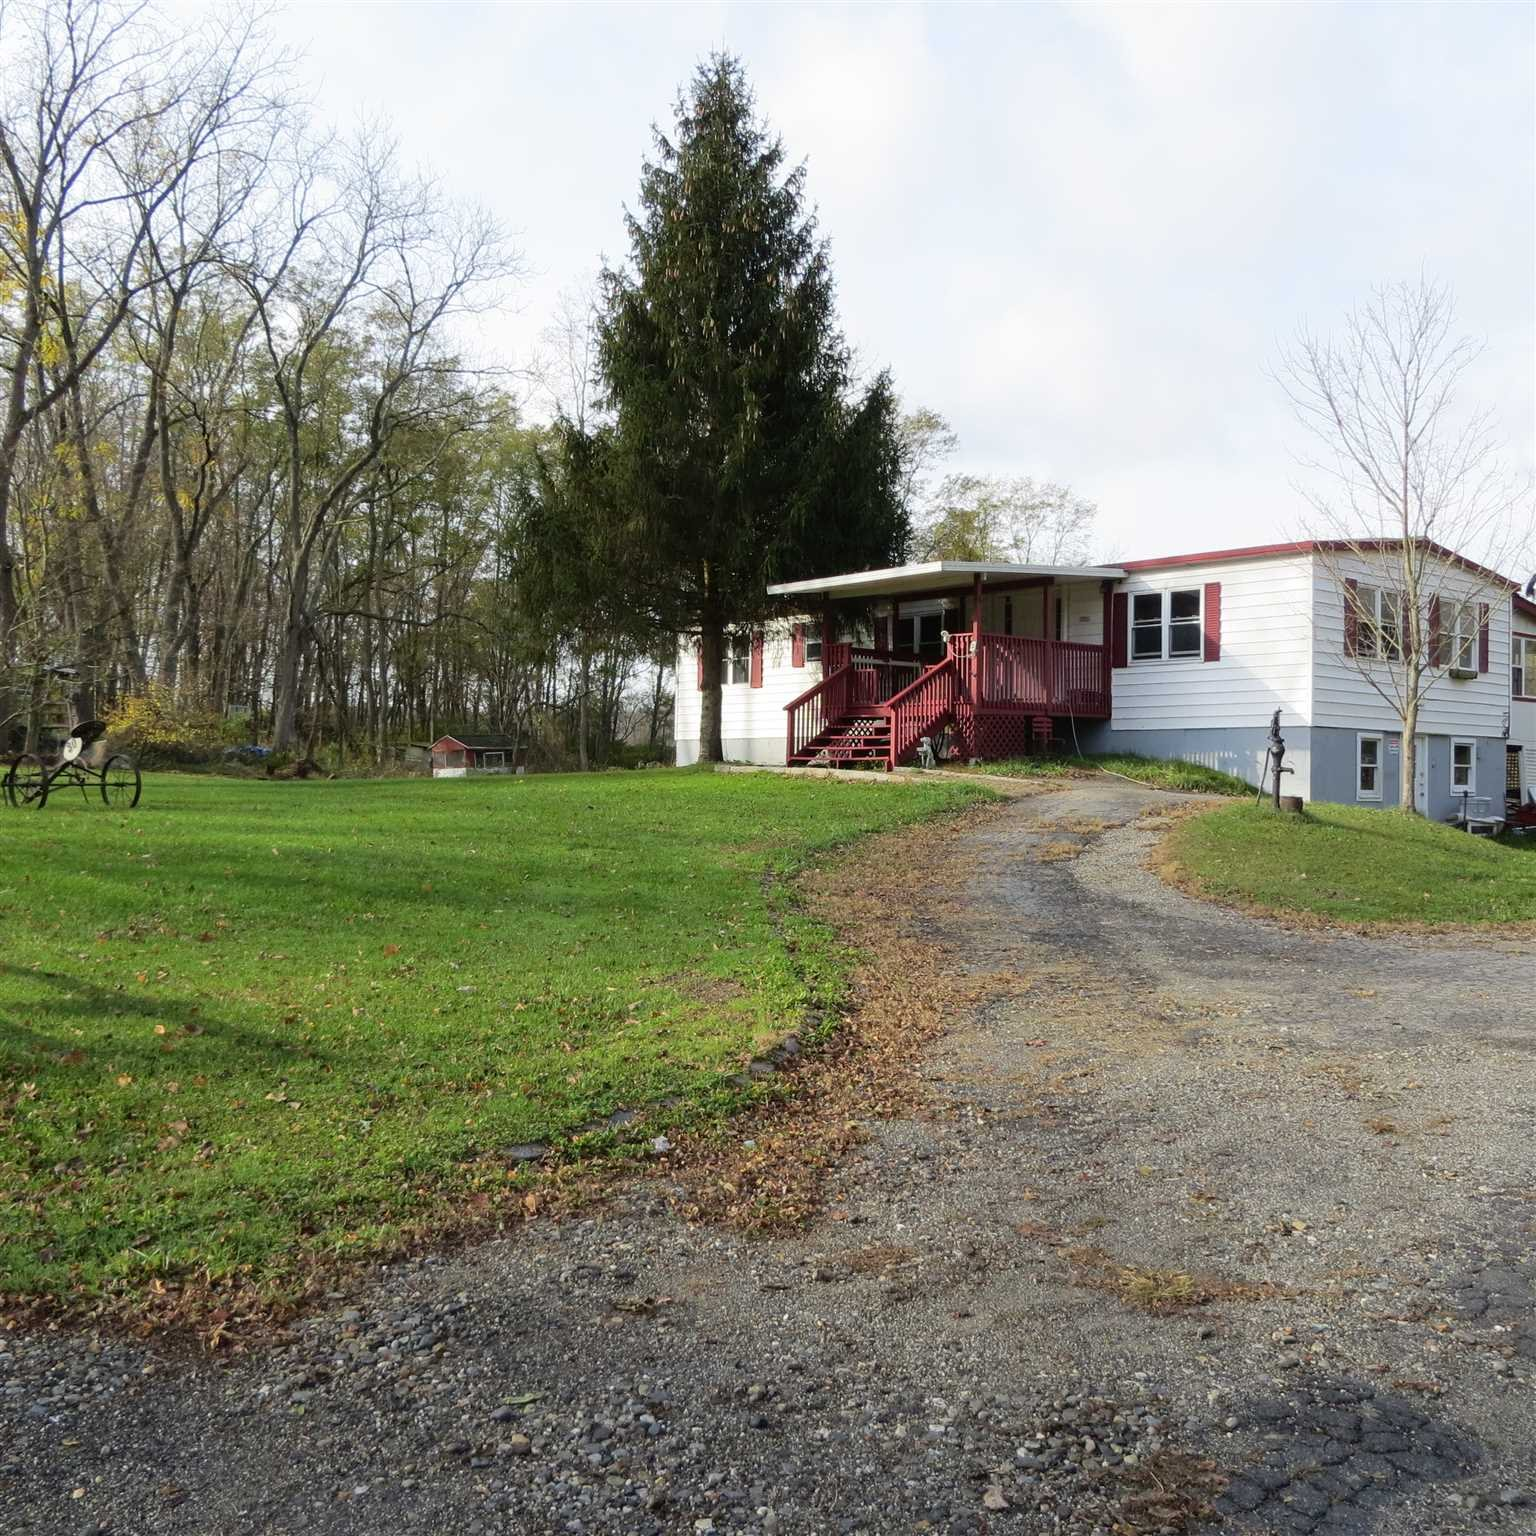 Single Family Home for Sale at 30 POPLAR HILL ROAD 30 POPLAR HILL ROAD Amenia, New York 12592 United States